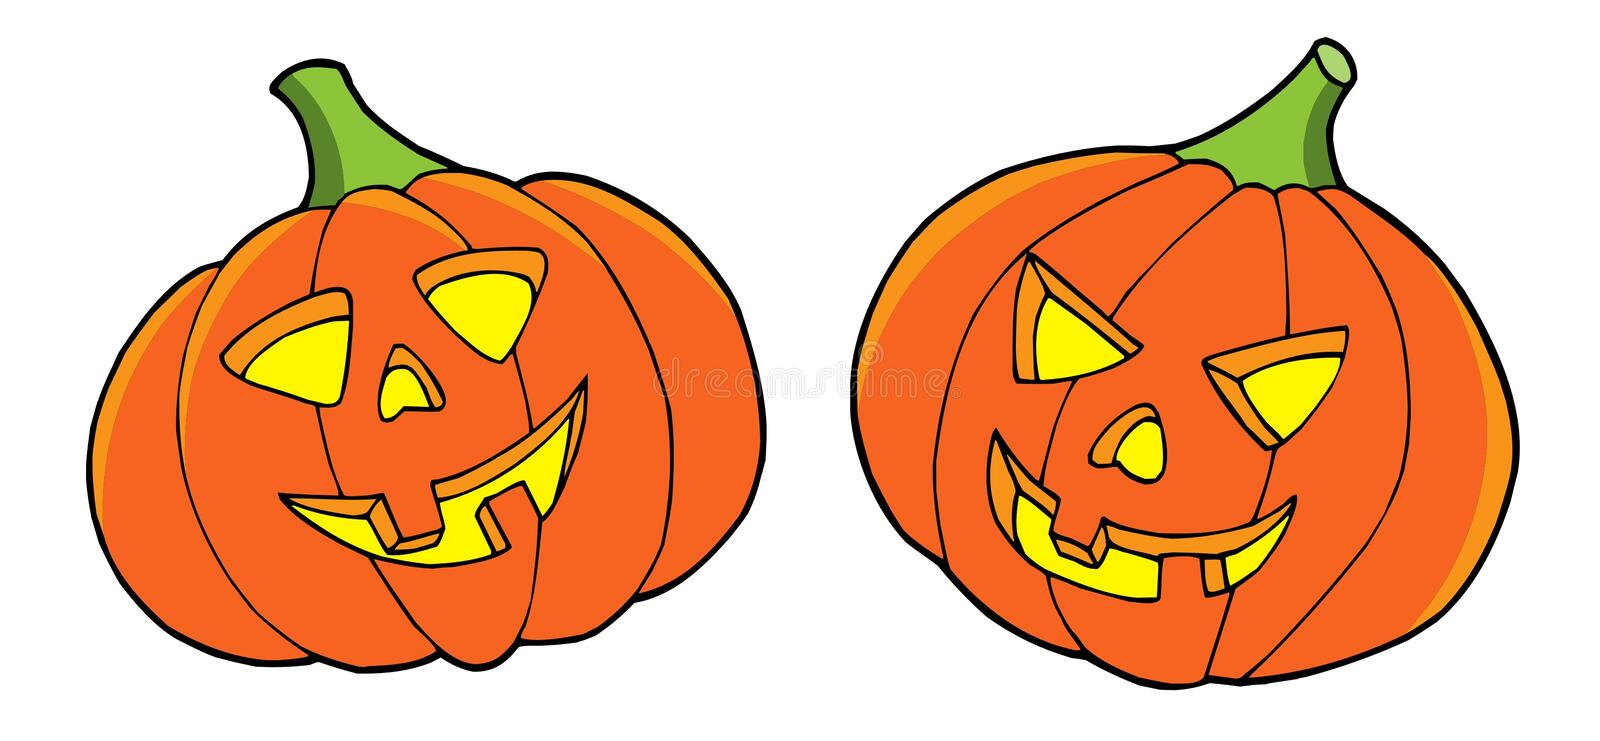 Download Pair Of Halloween Pumpkins Stock Photos - Image: 6620413